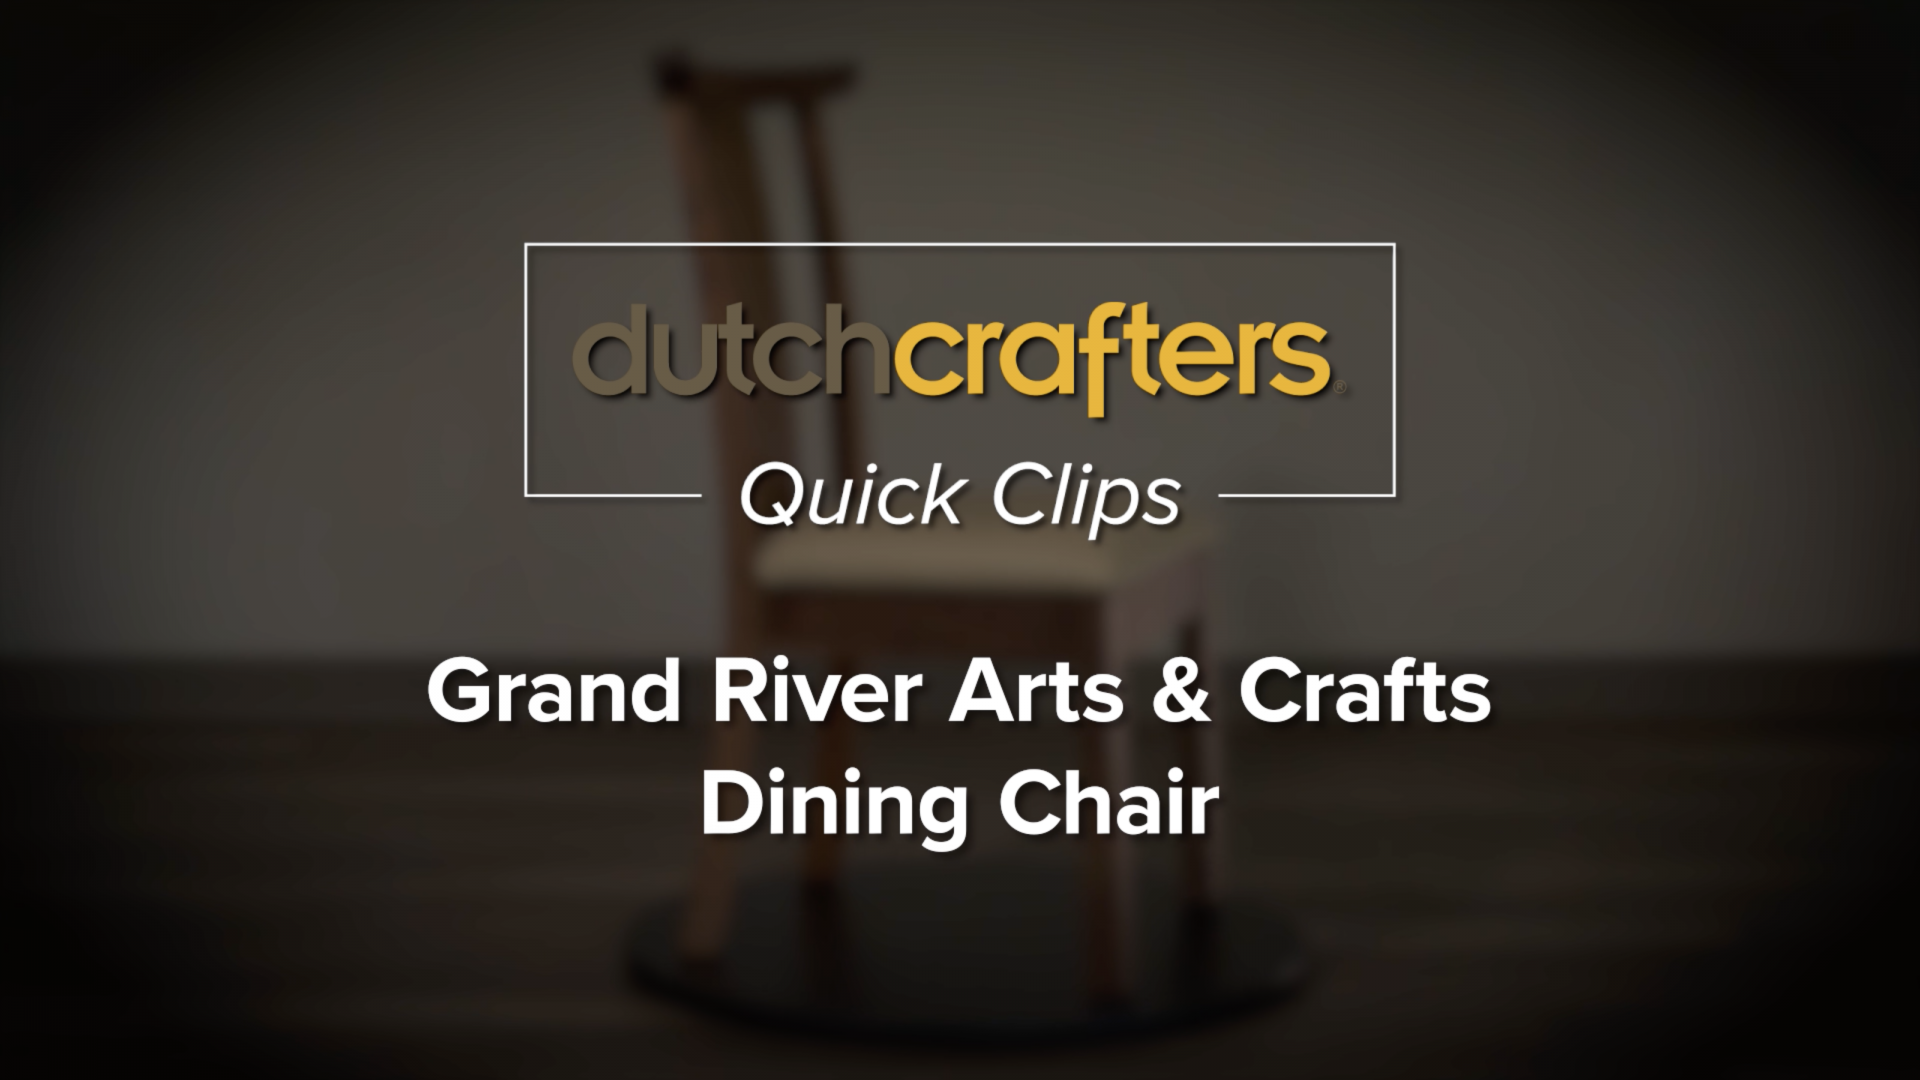 Grand River Dining Chair video title screen